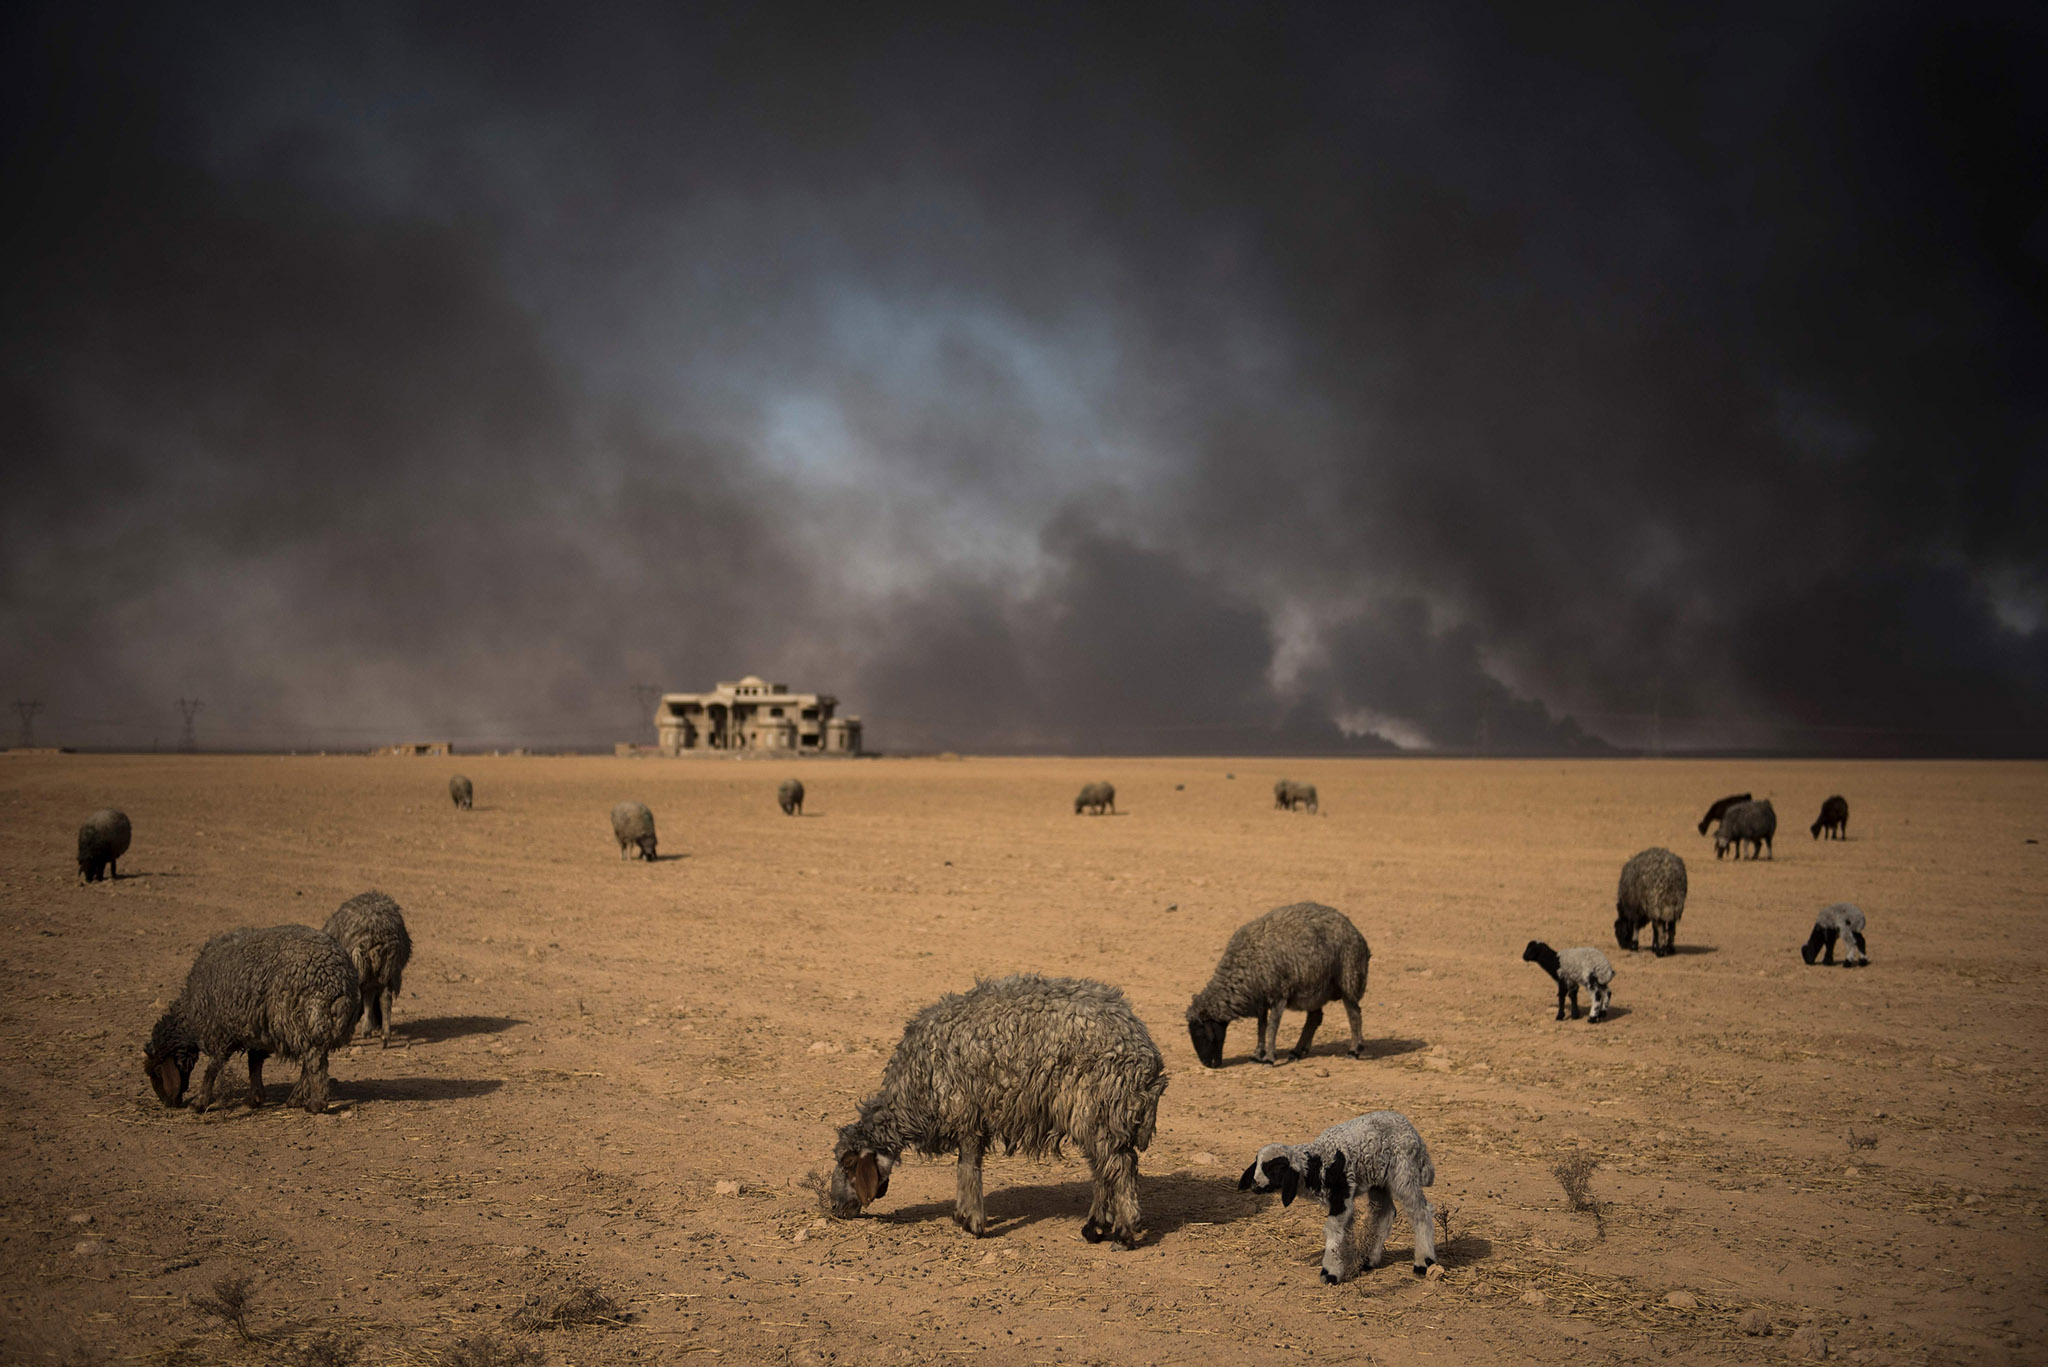 Blackened sheep graze as oil wells, set ablaze by retreating Islamic State (IS) jihadists, burn in the background, in the town of Qayyarah, some 70 km south of Mosul on November 20, 2016. Locals told AFP that they face a range of health issues including breathing difficulties, and sheperds said they could not sell their livestock as the sheep's fleece was blackened by smoke. / AFP PHOTO / Odd ANDERSENODD ANDERSEN/AFP/Getty Images